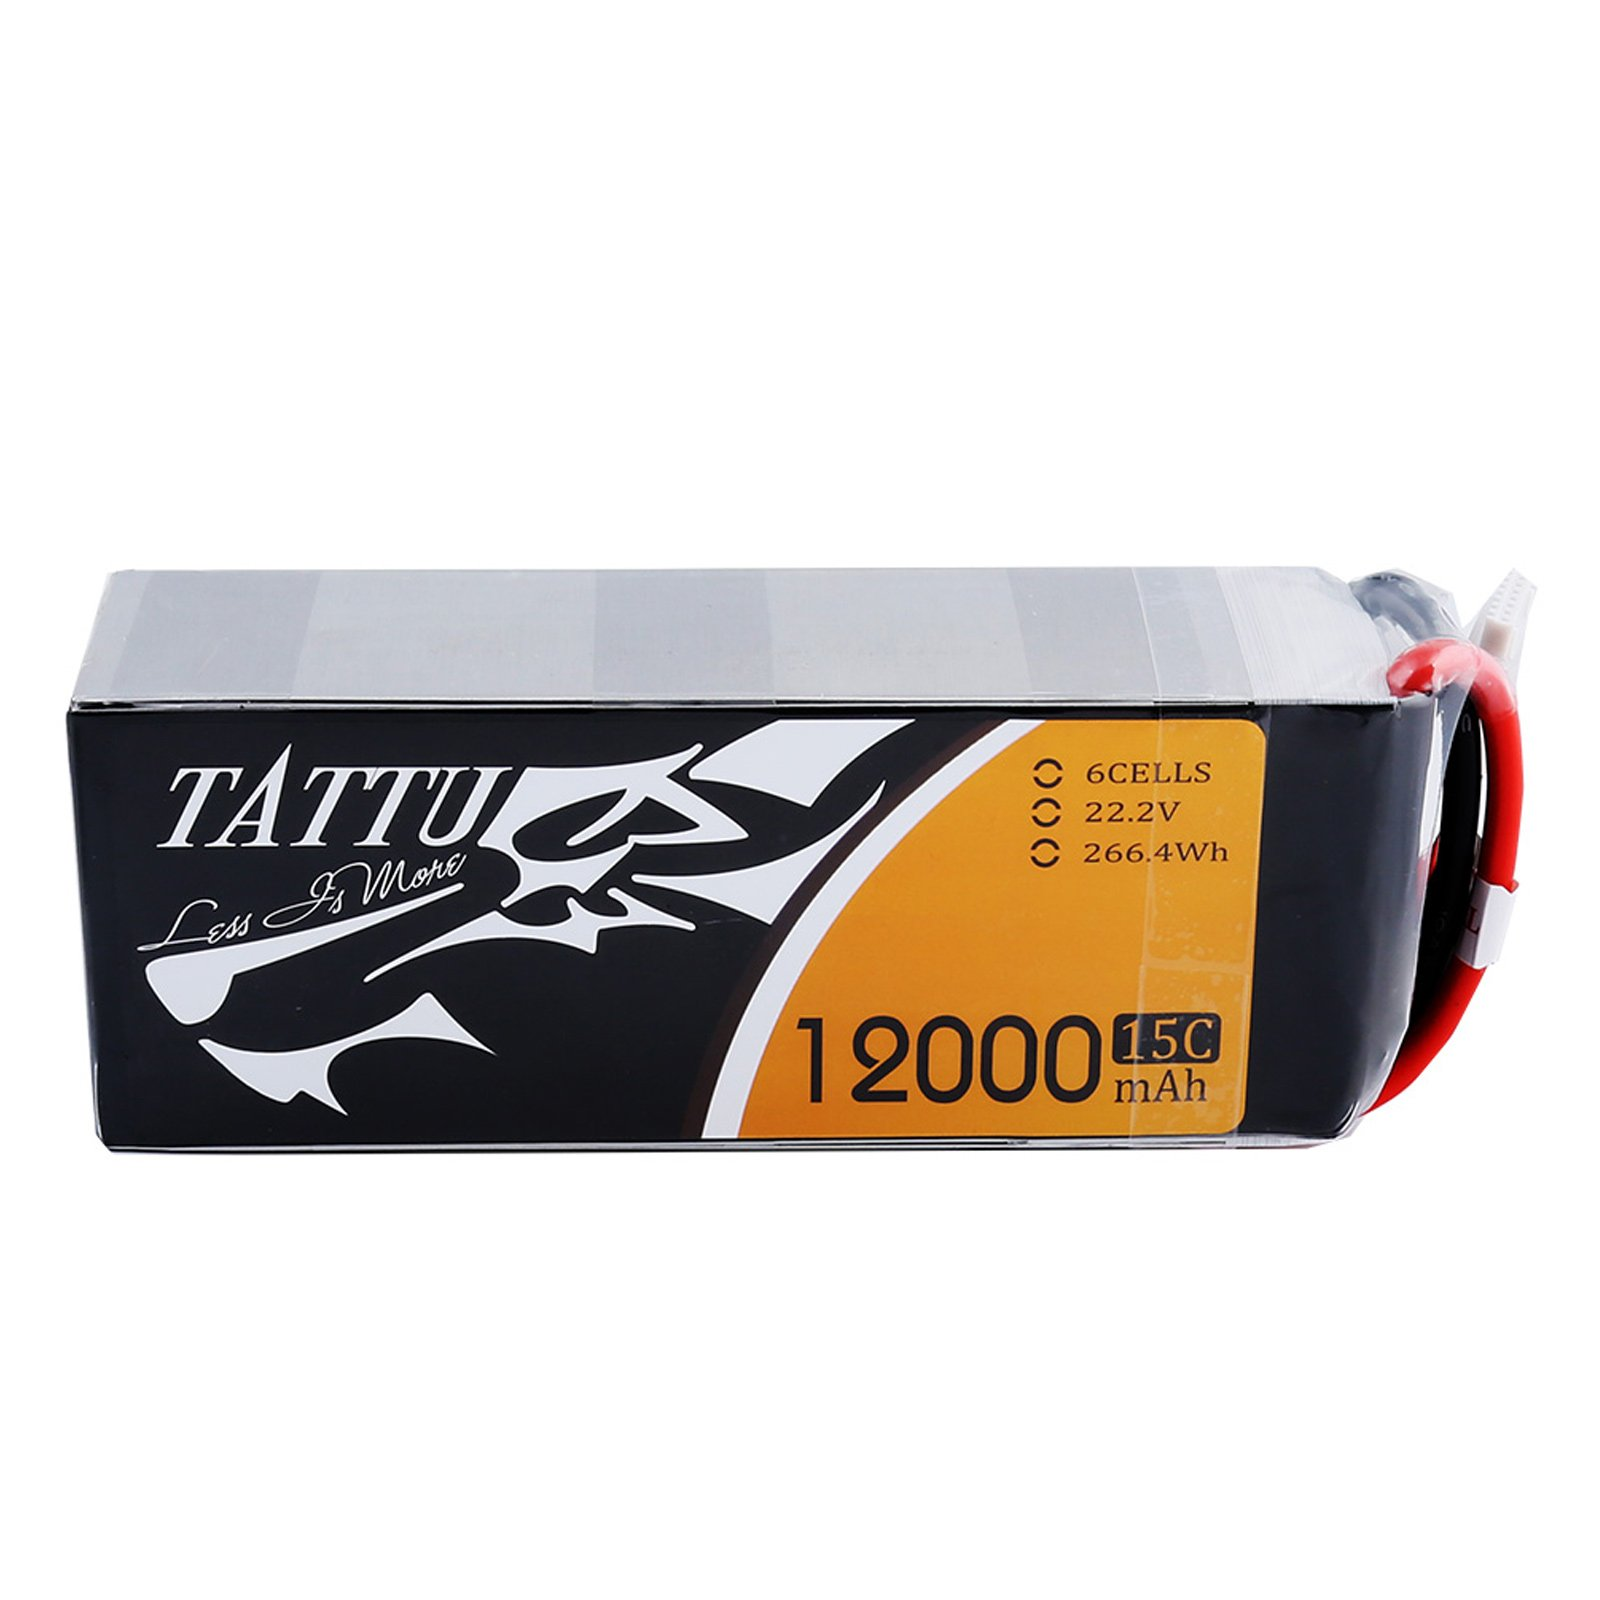 Tattu 12000mAh 6S1P 15C Lipo Battery Pack with EC5 Plug by Tattu